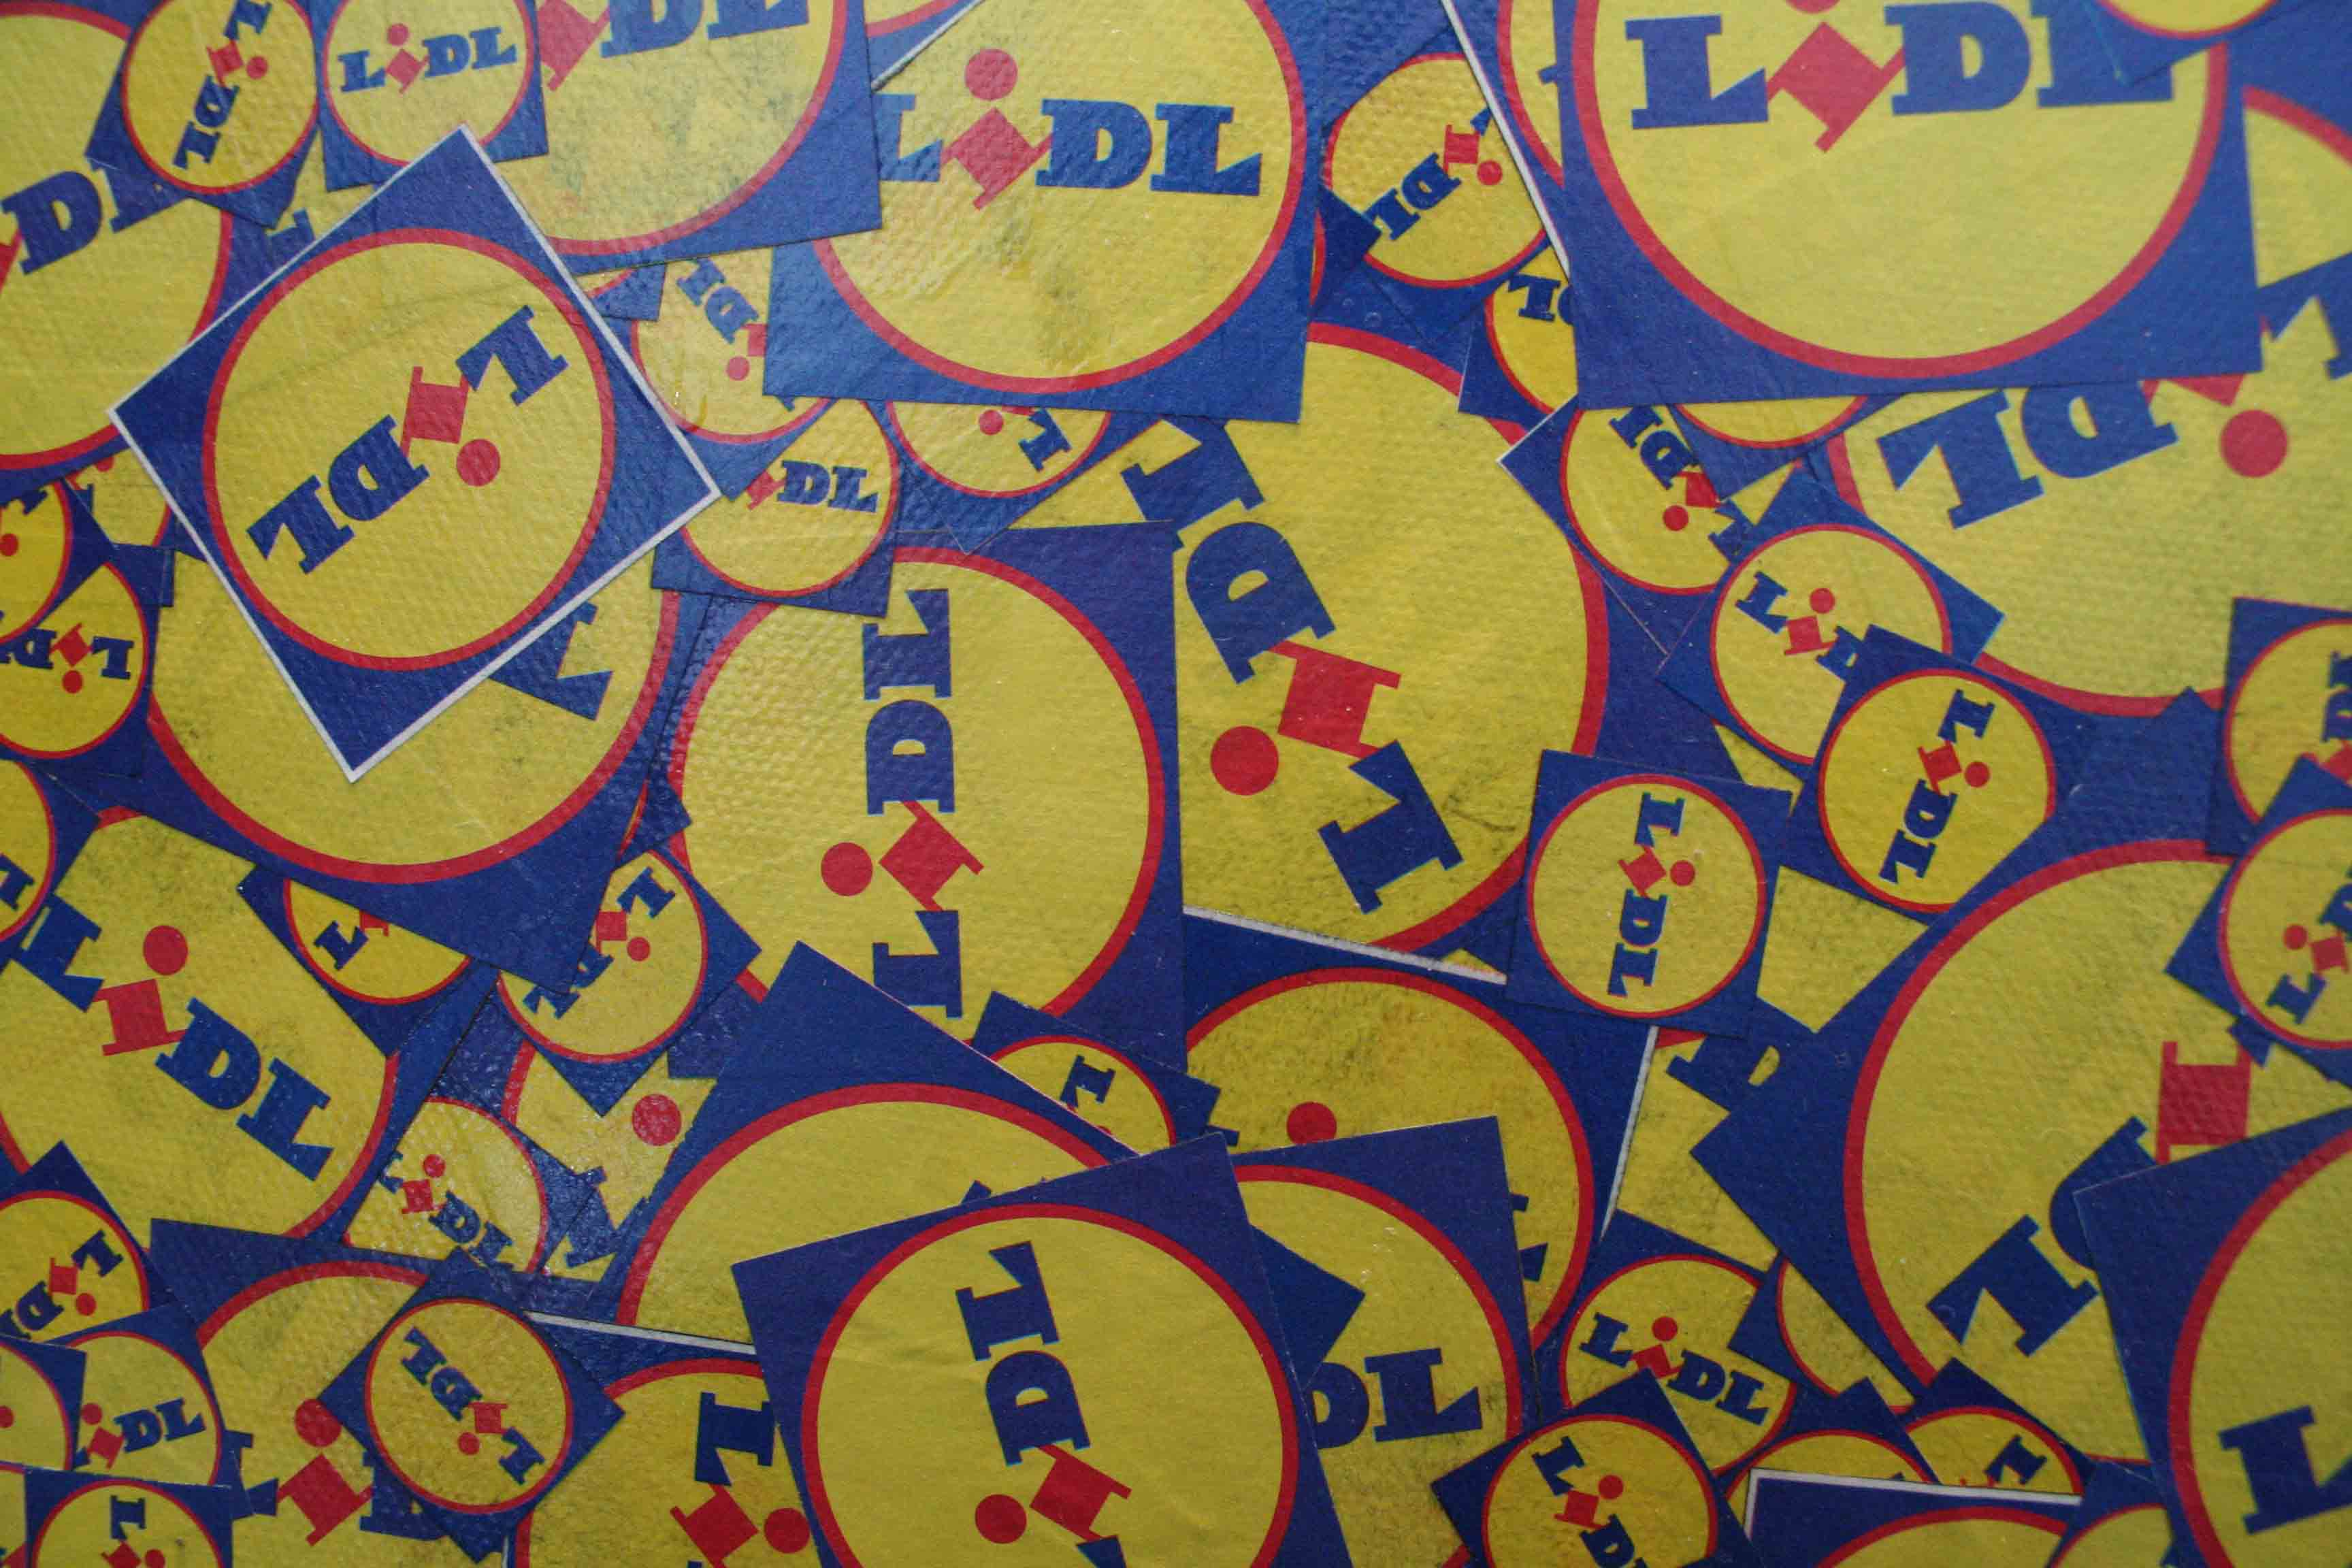 logos lidl du portrait hollandiscount